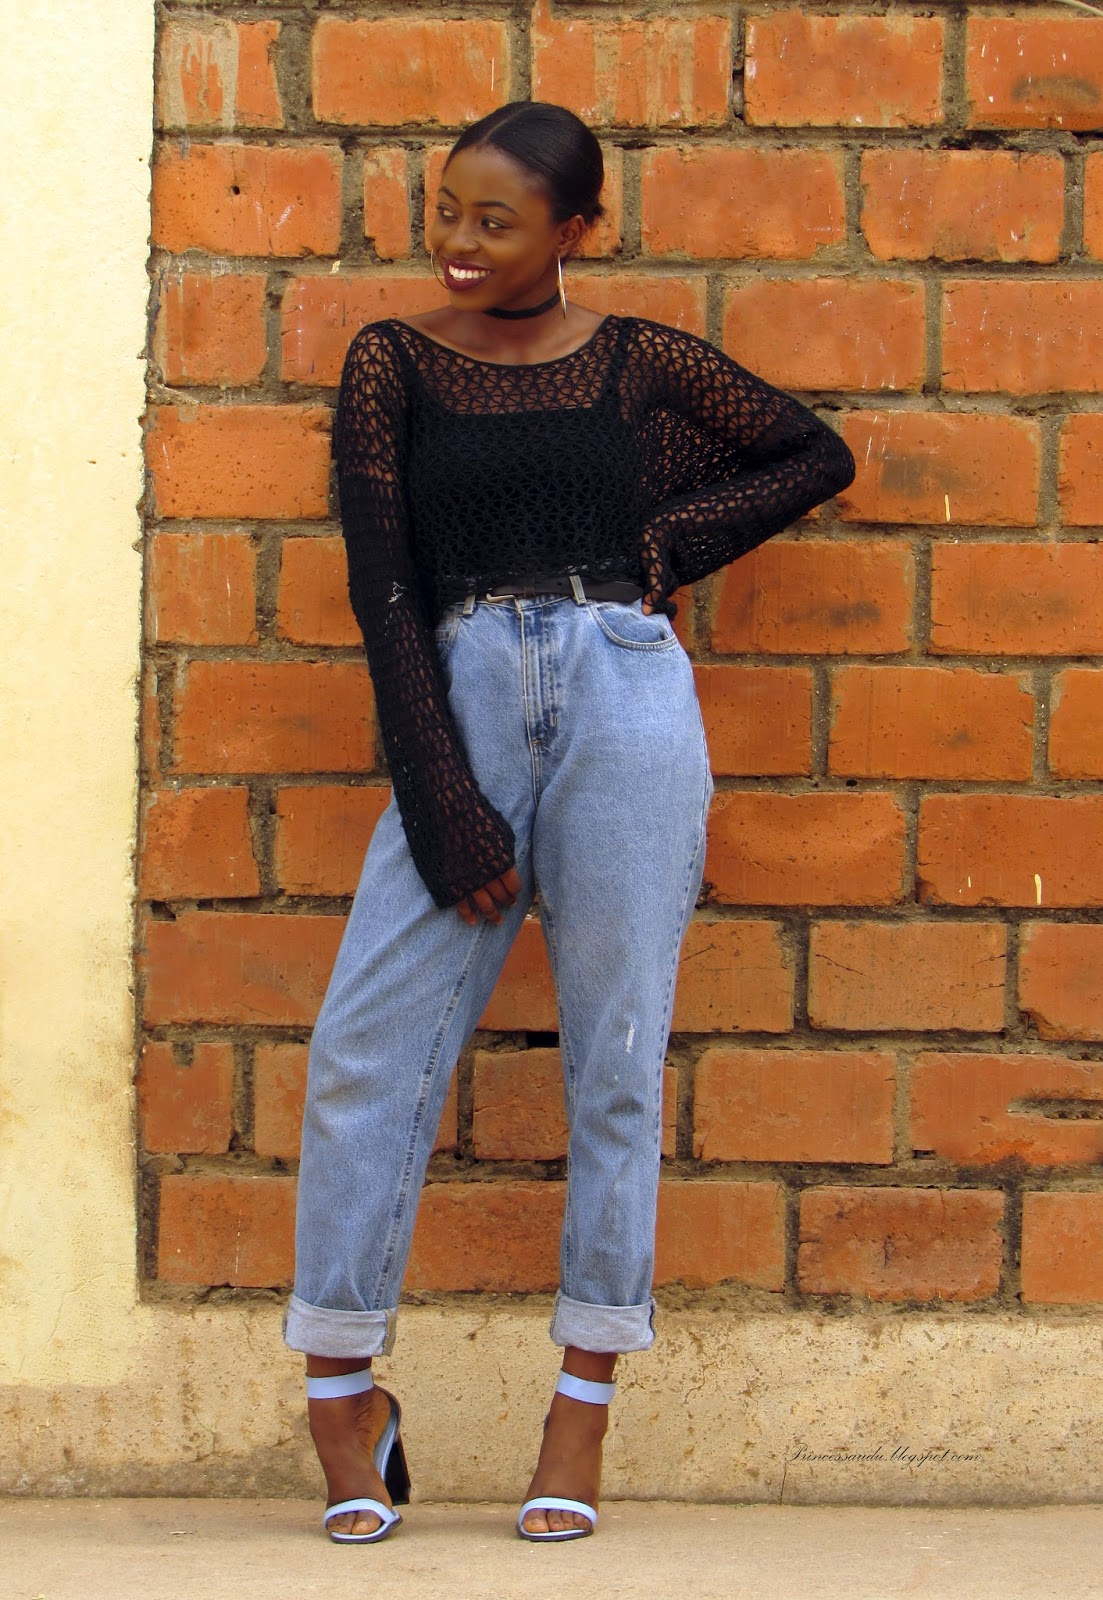 90's fashion trends, knitwear crop top, choker trend, boyfriend jeans, dark lip